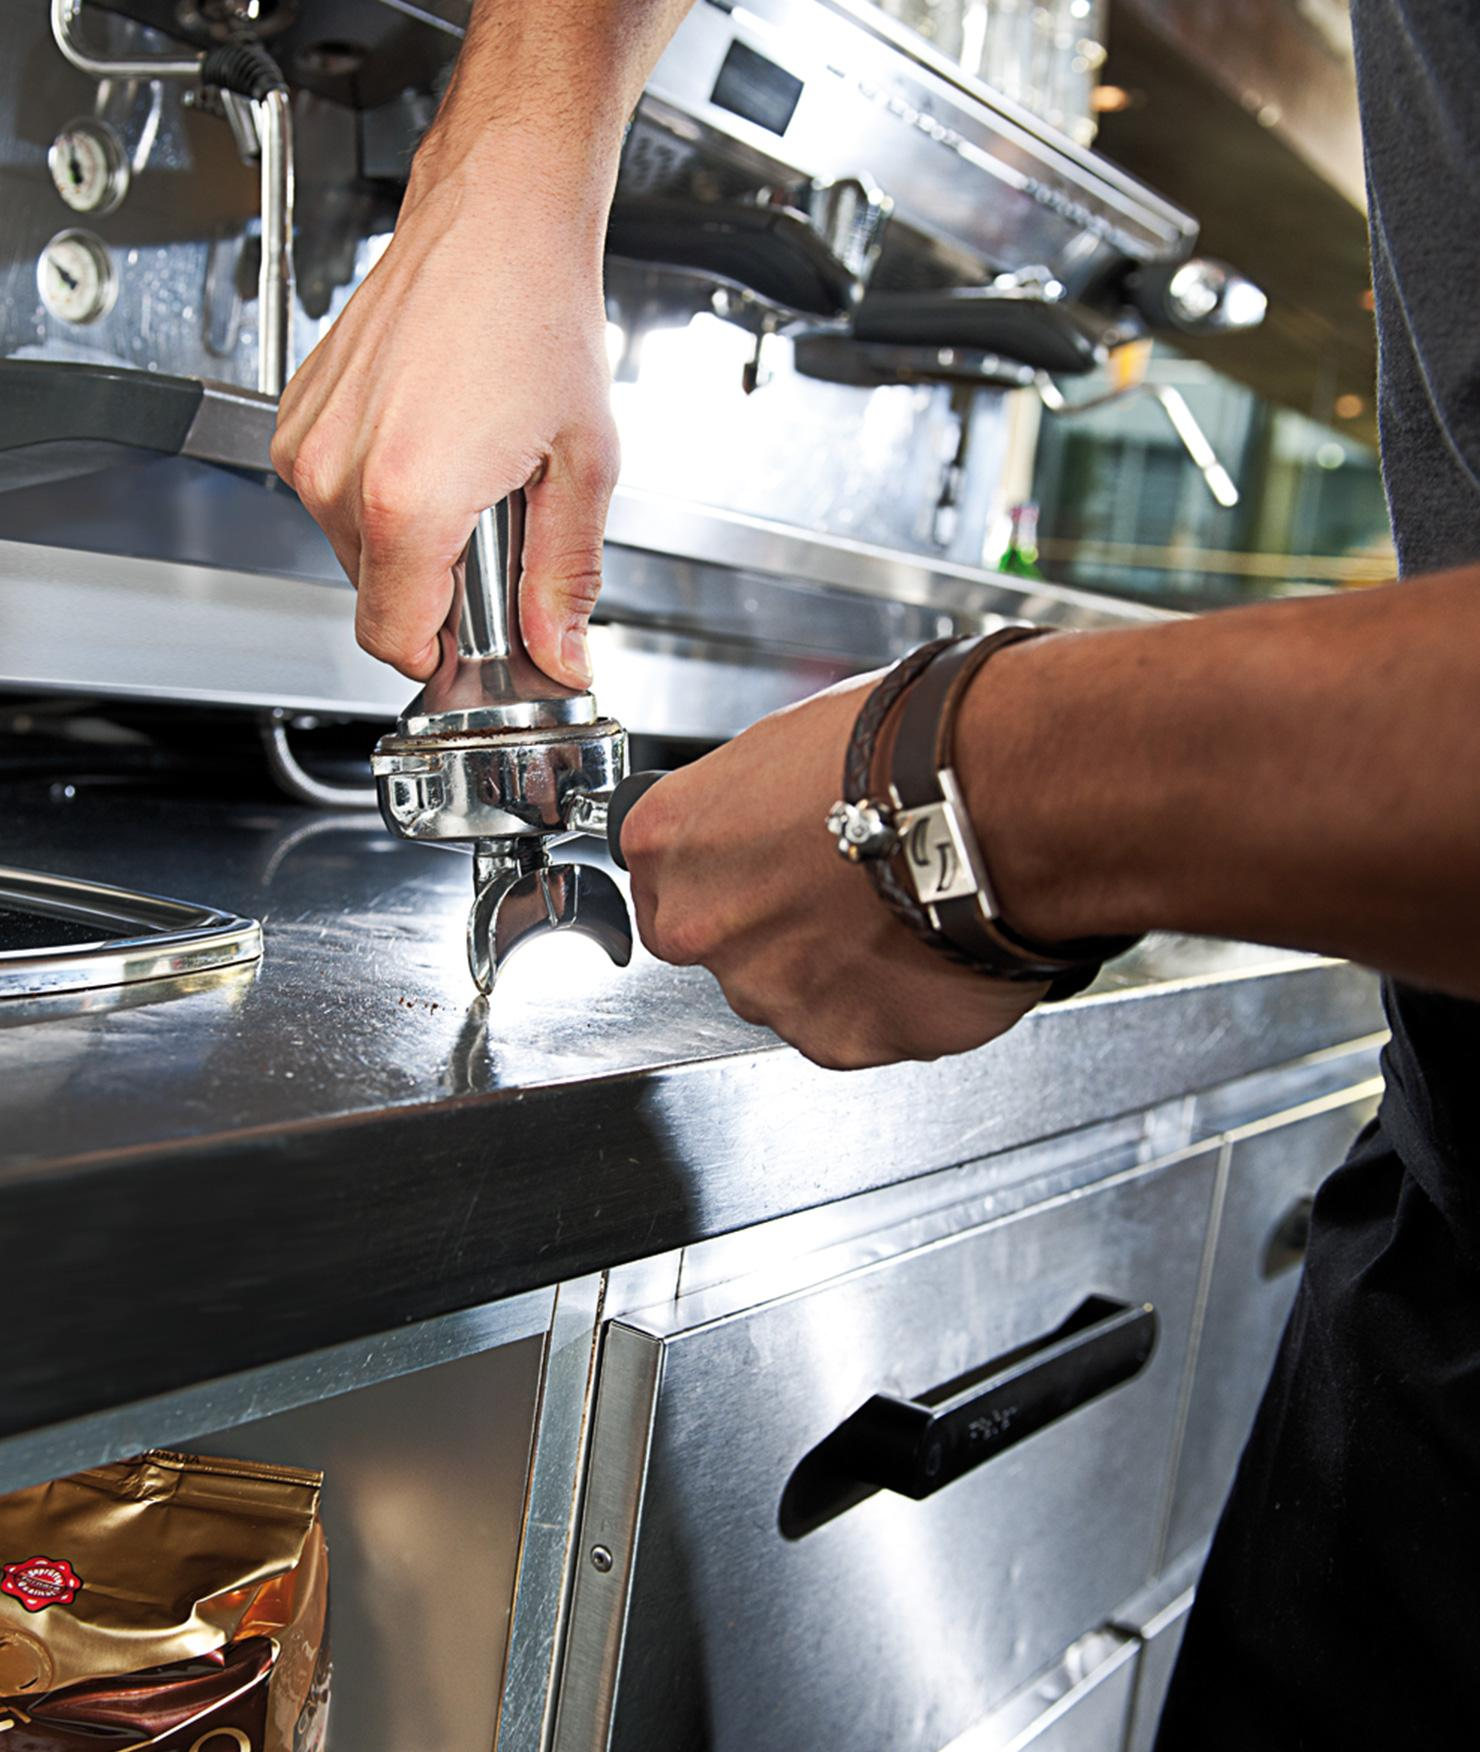 Espresso being served from a coffee machine